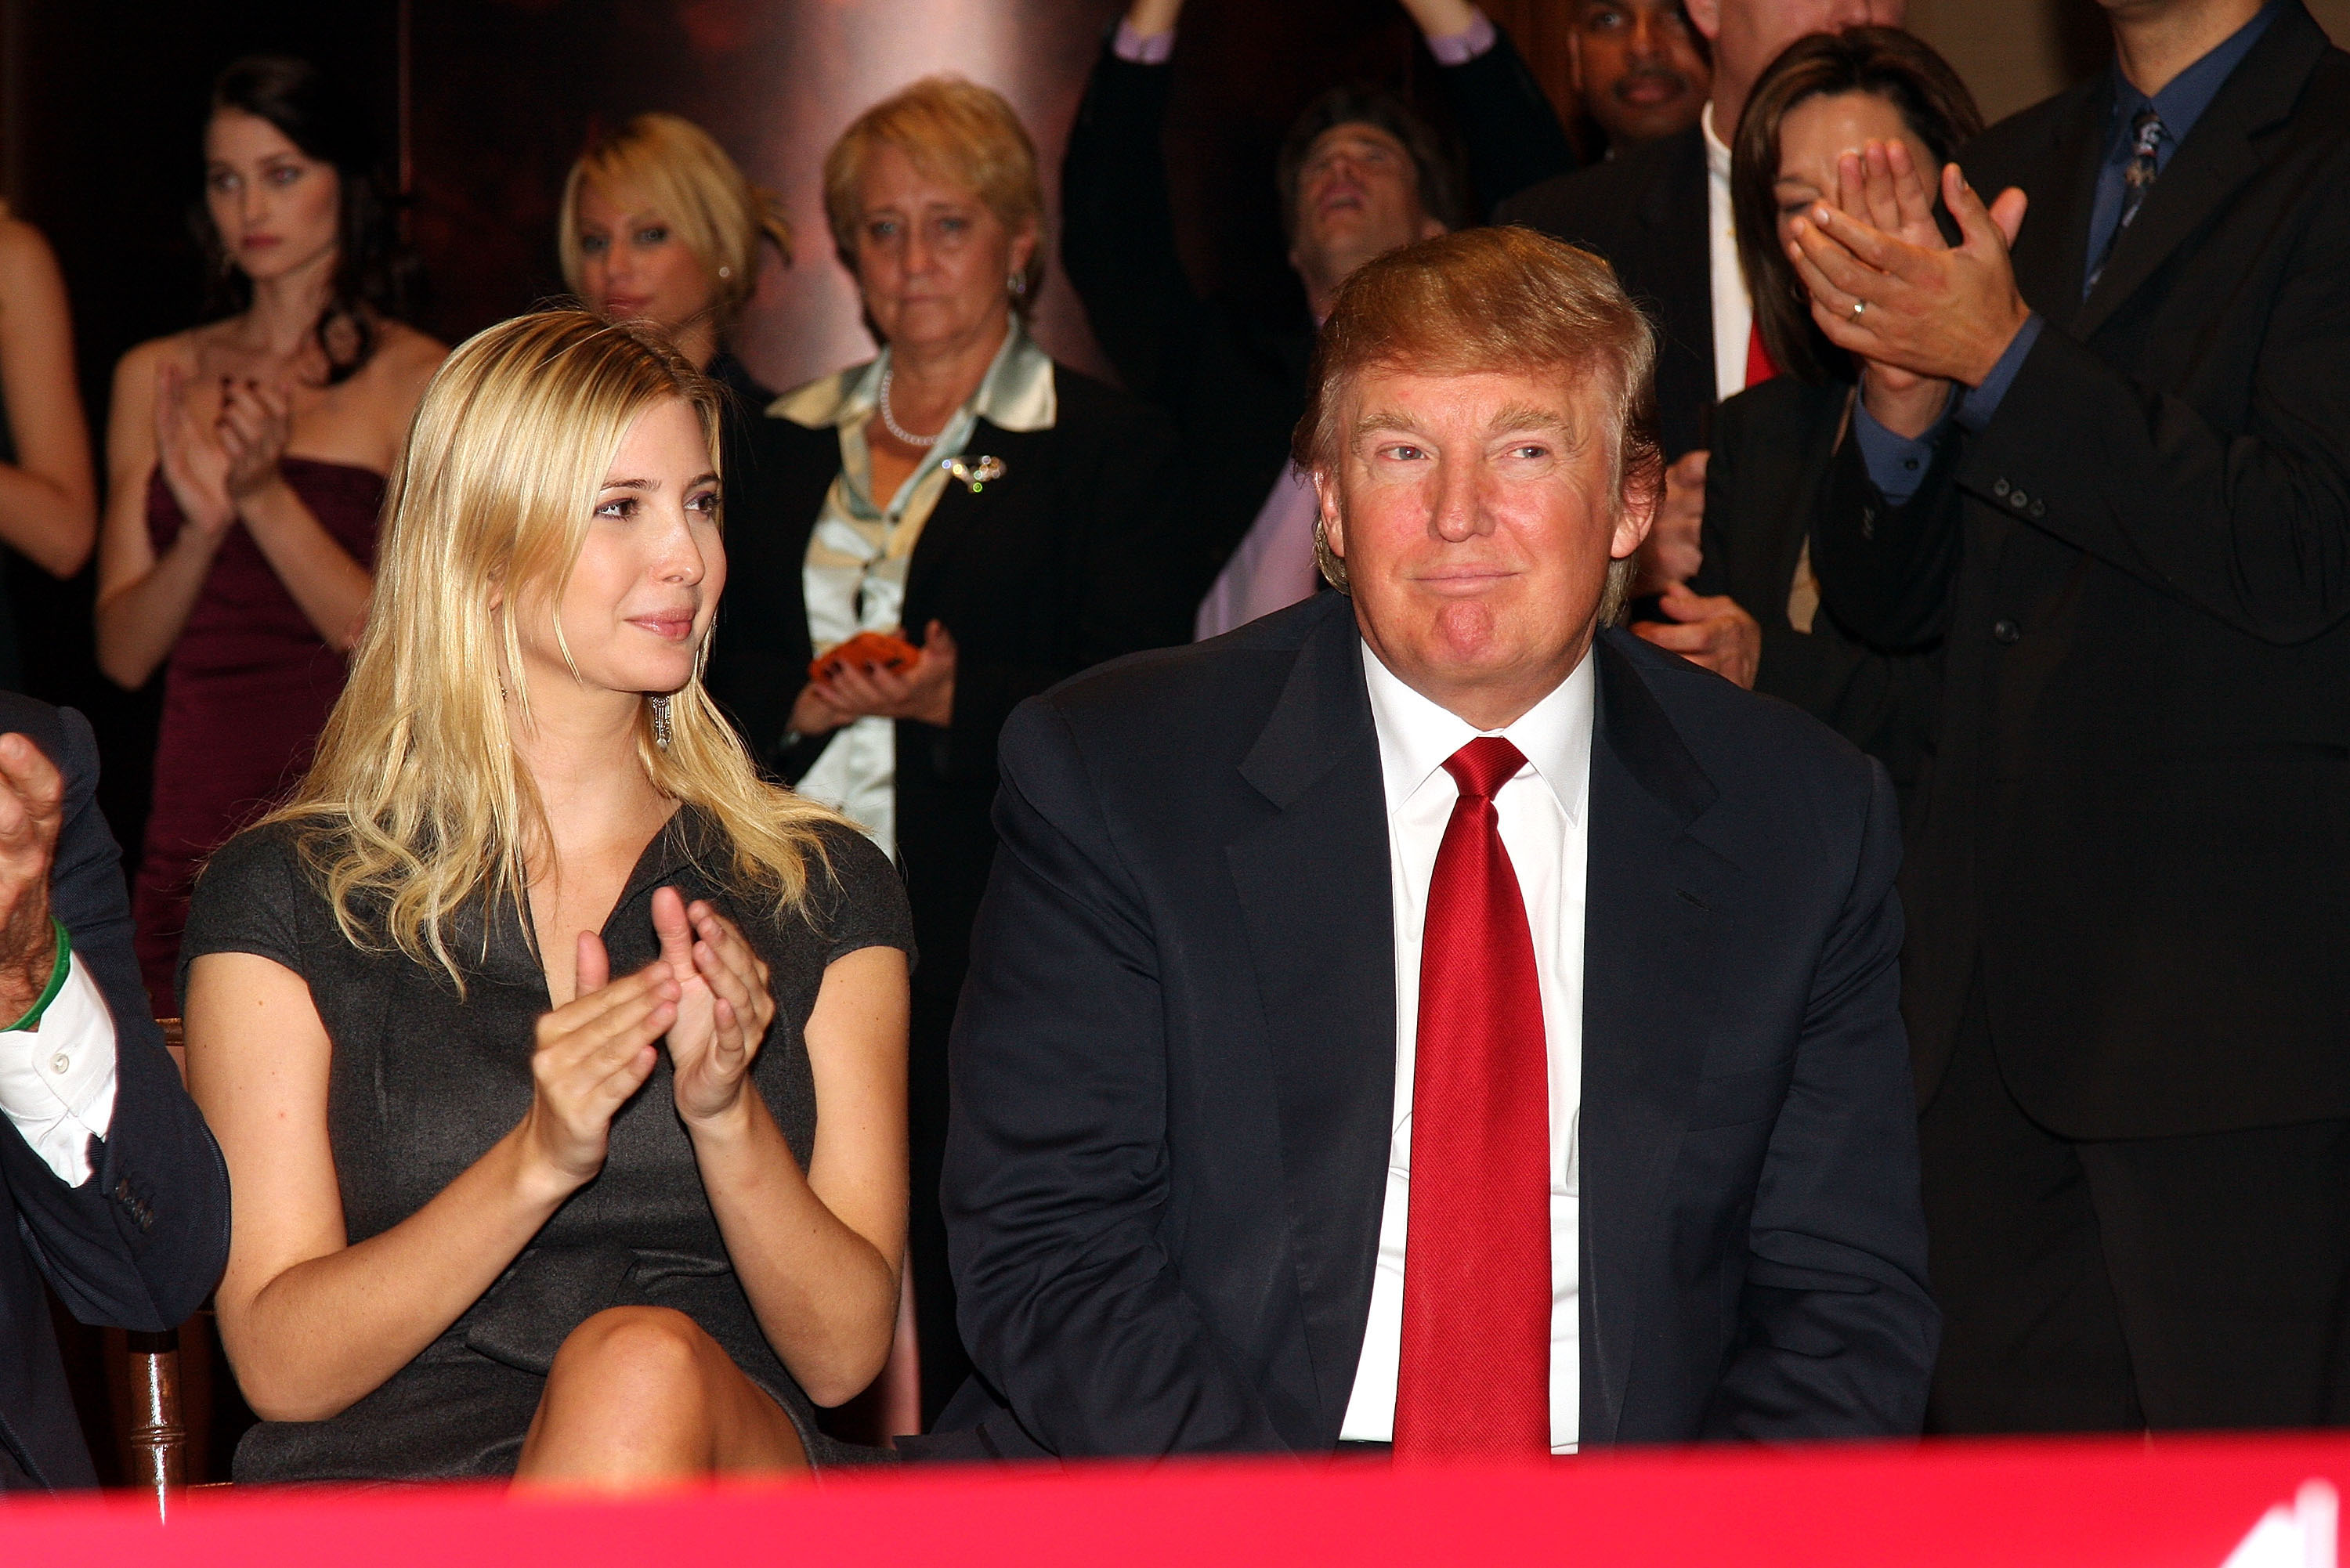 ATLANTIC CITY, NJ - OCTOBER 02:  Donald Trump and Ivanka Trump, Vice President of Development and Acquisitions for Trump Organization, attend the Ribbon Cutting Ceremony to celebrate the opening of The Chairman Tower at the Trump Taj Mahal October 2, 2008 Atlantic City, New Jersey.